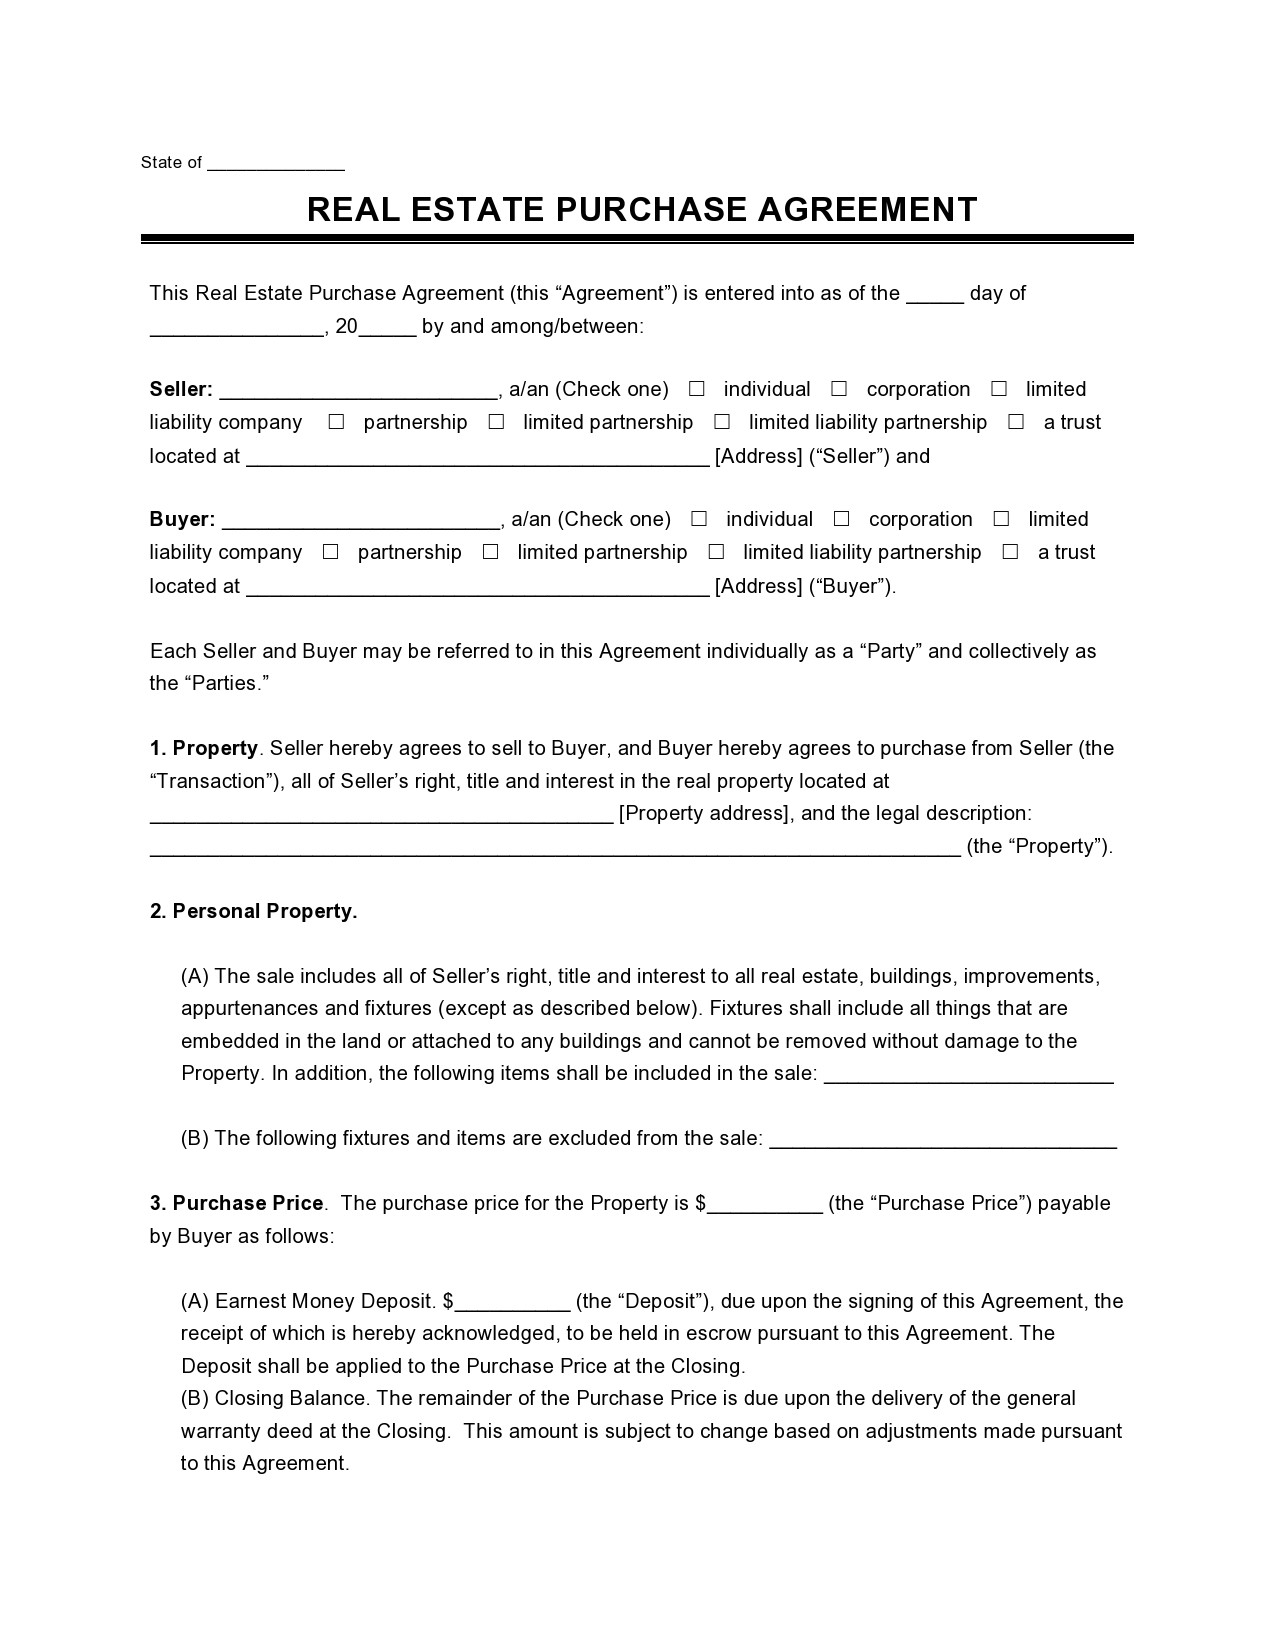 Free offer to purchase real estate 18